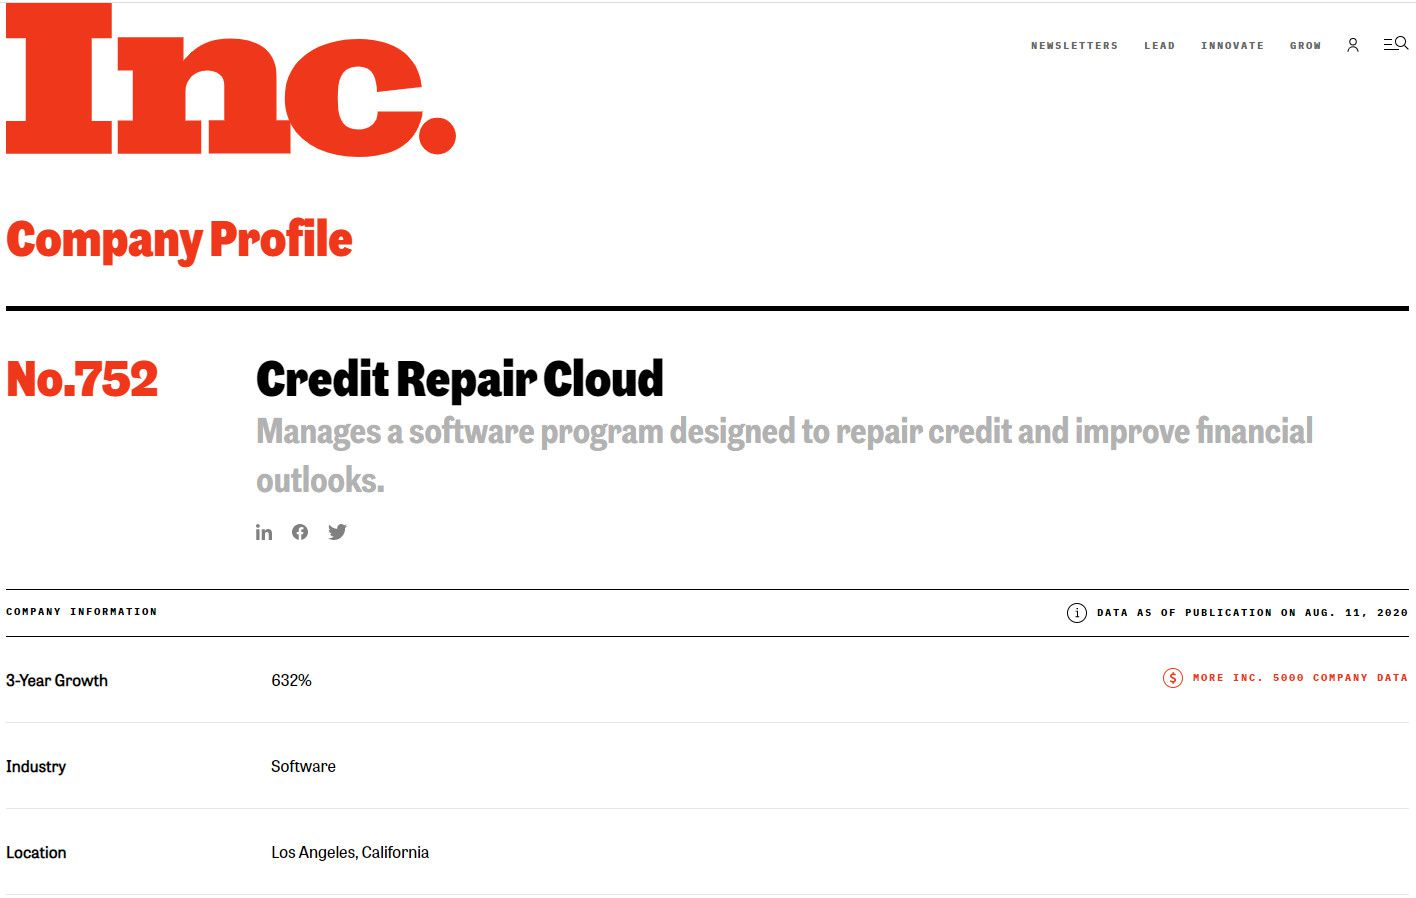 Inc 5000 - Credit Repair Cloud